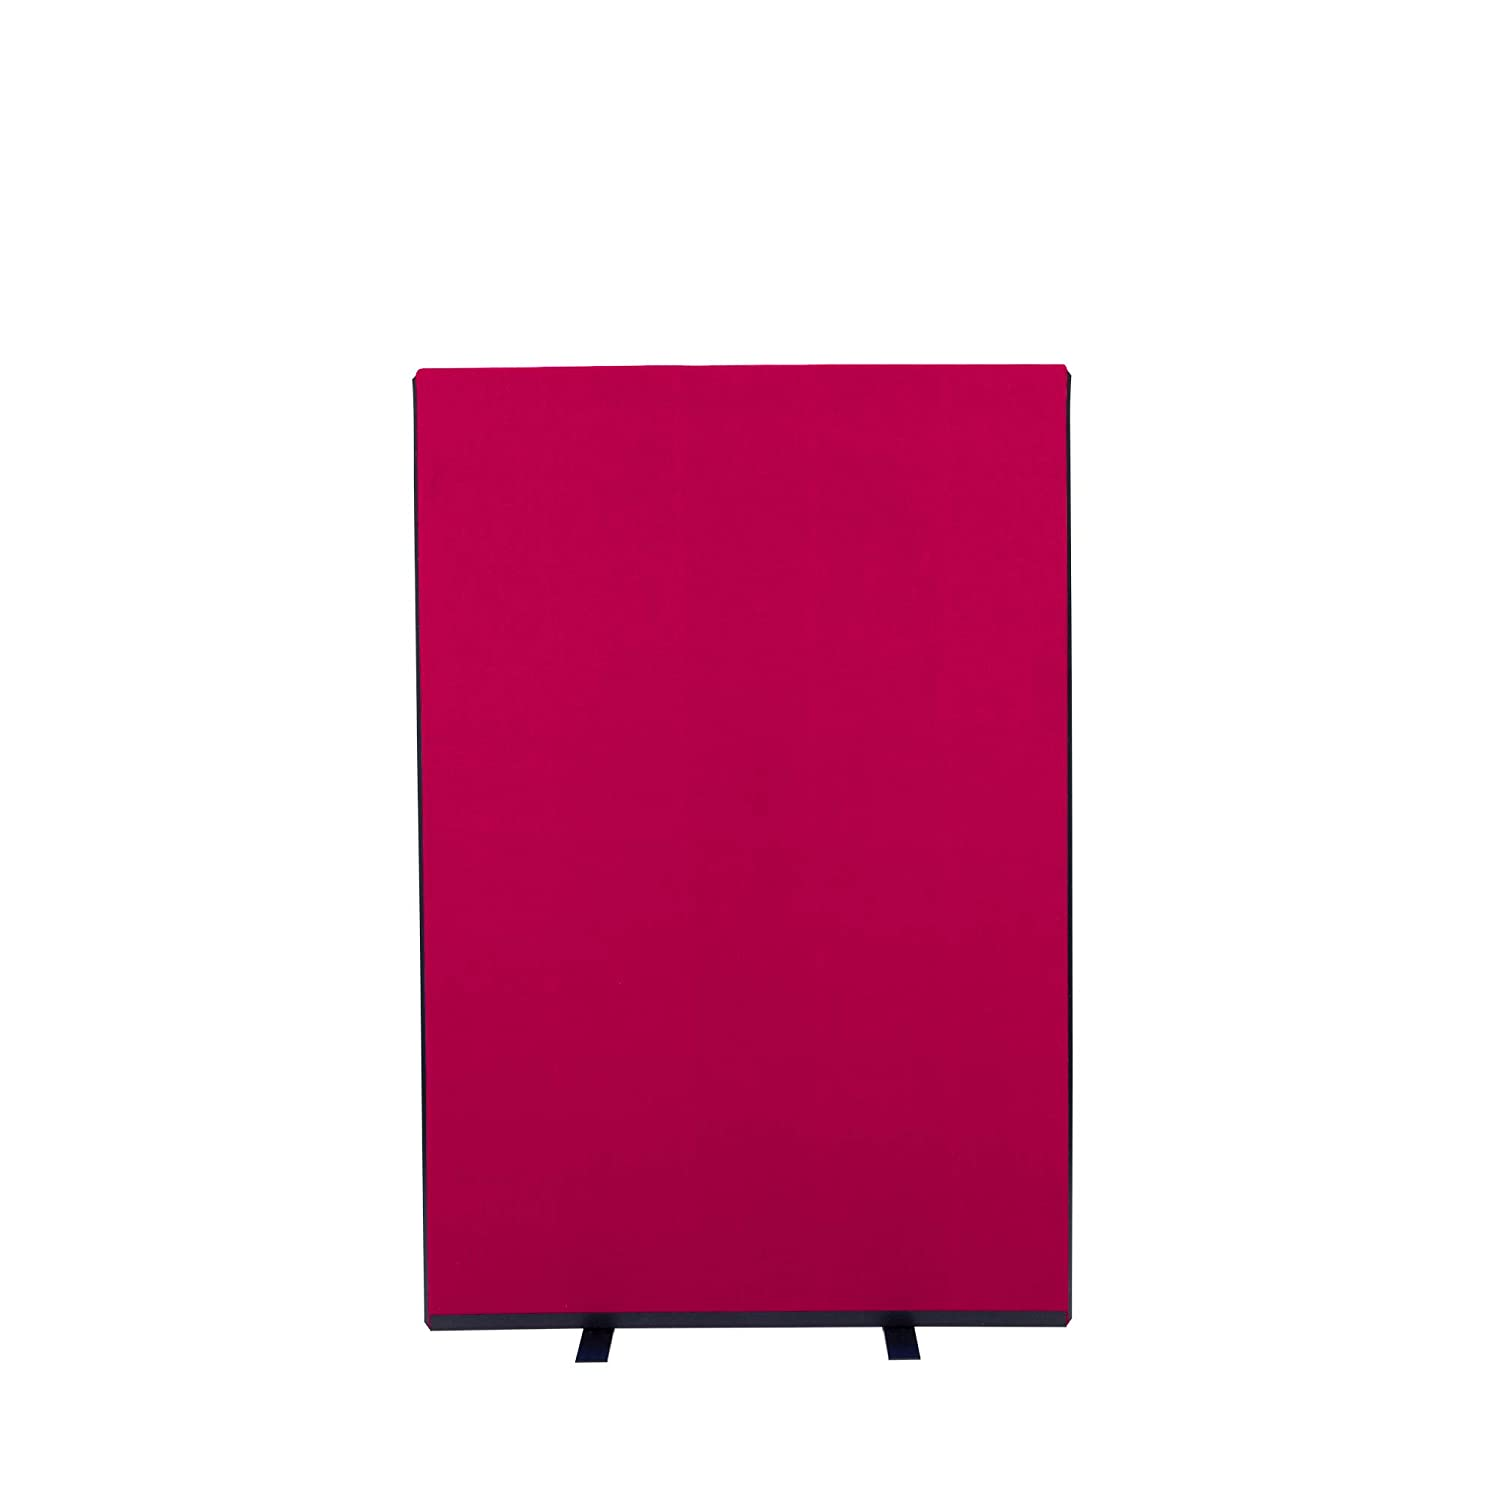 Wine 1000mm W x 1500mm H Panelwarehouse 1000mm W x 1500mm H Free Standing Office Partition Screens Room Divider Navy blueee Nyloop Fabric